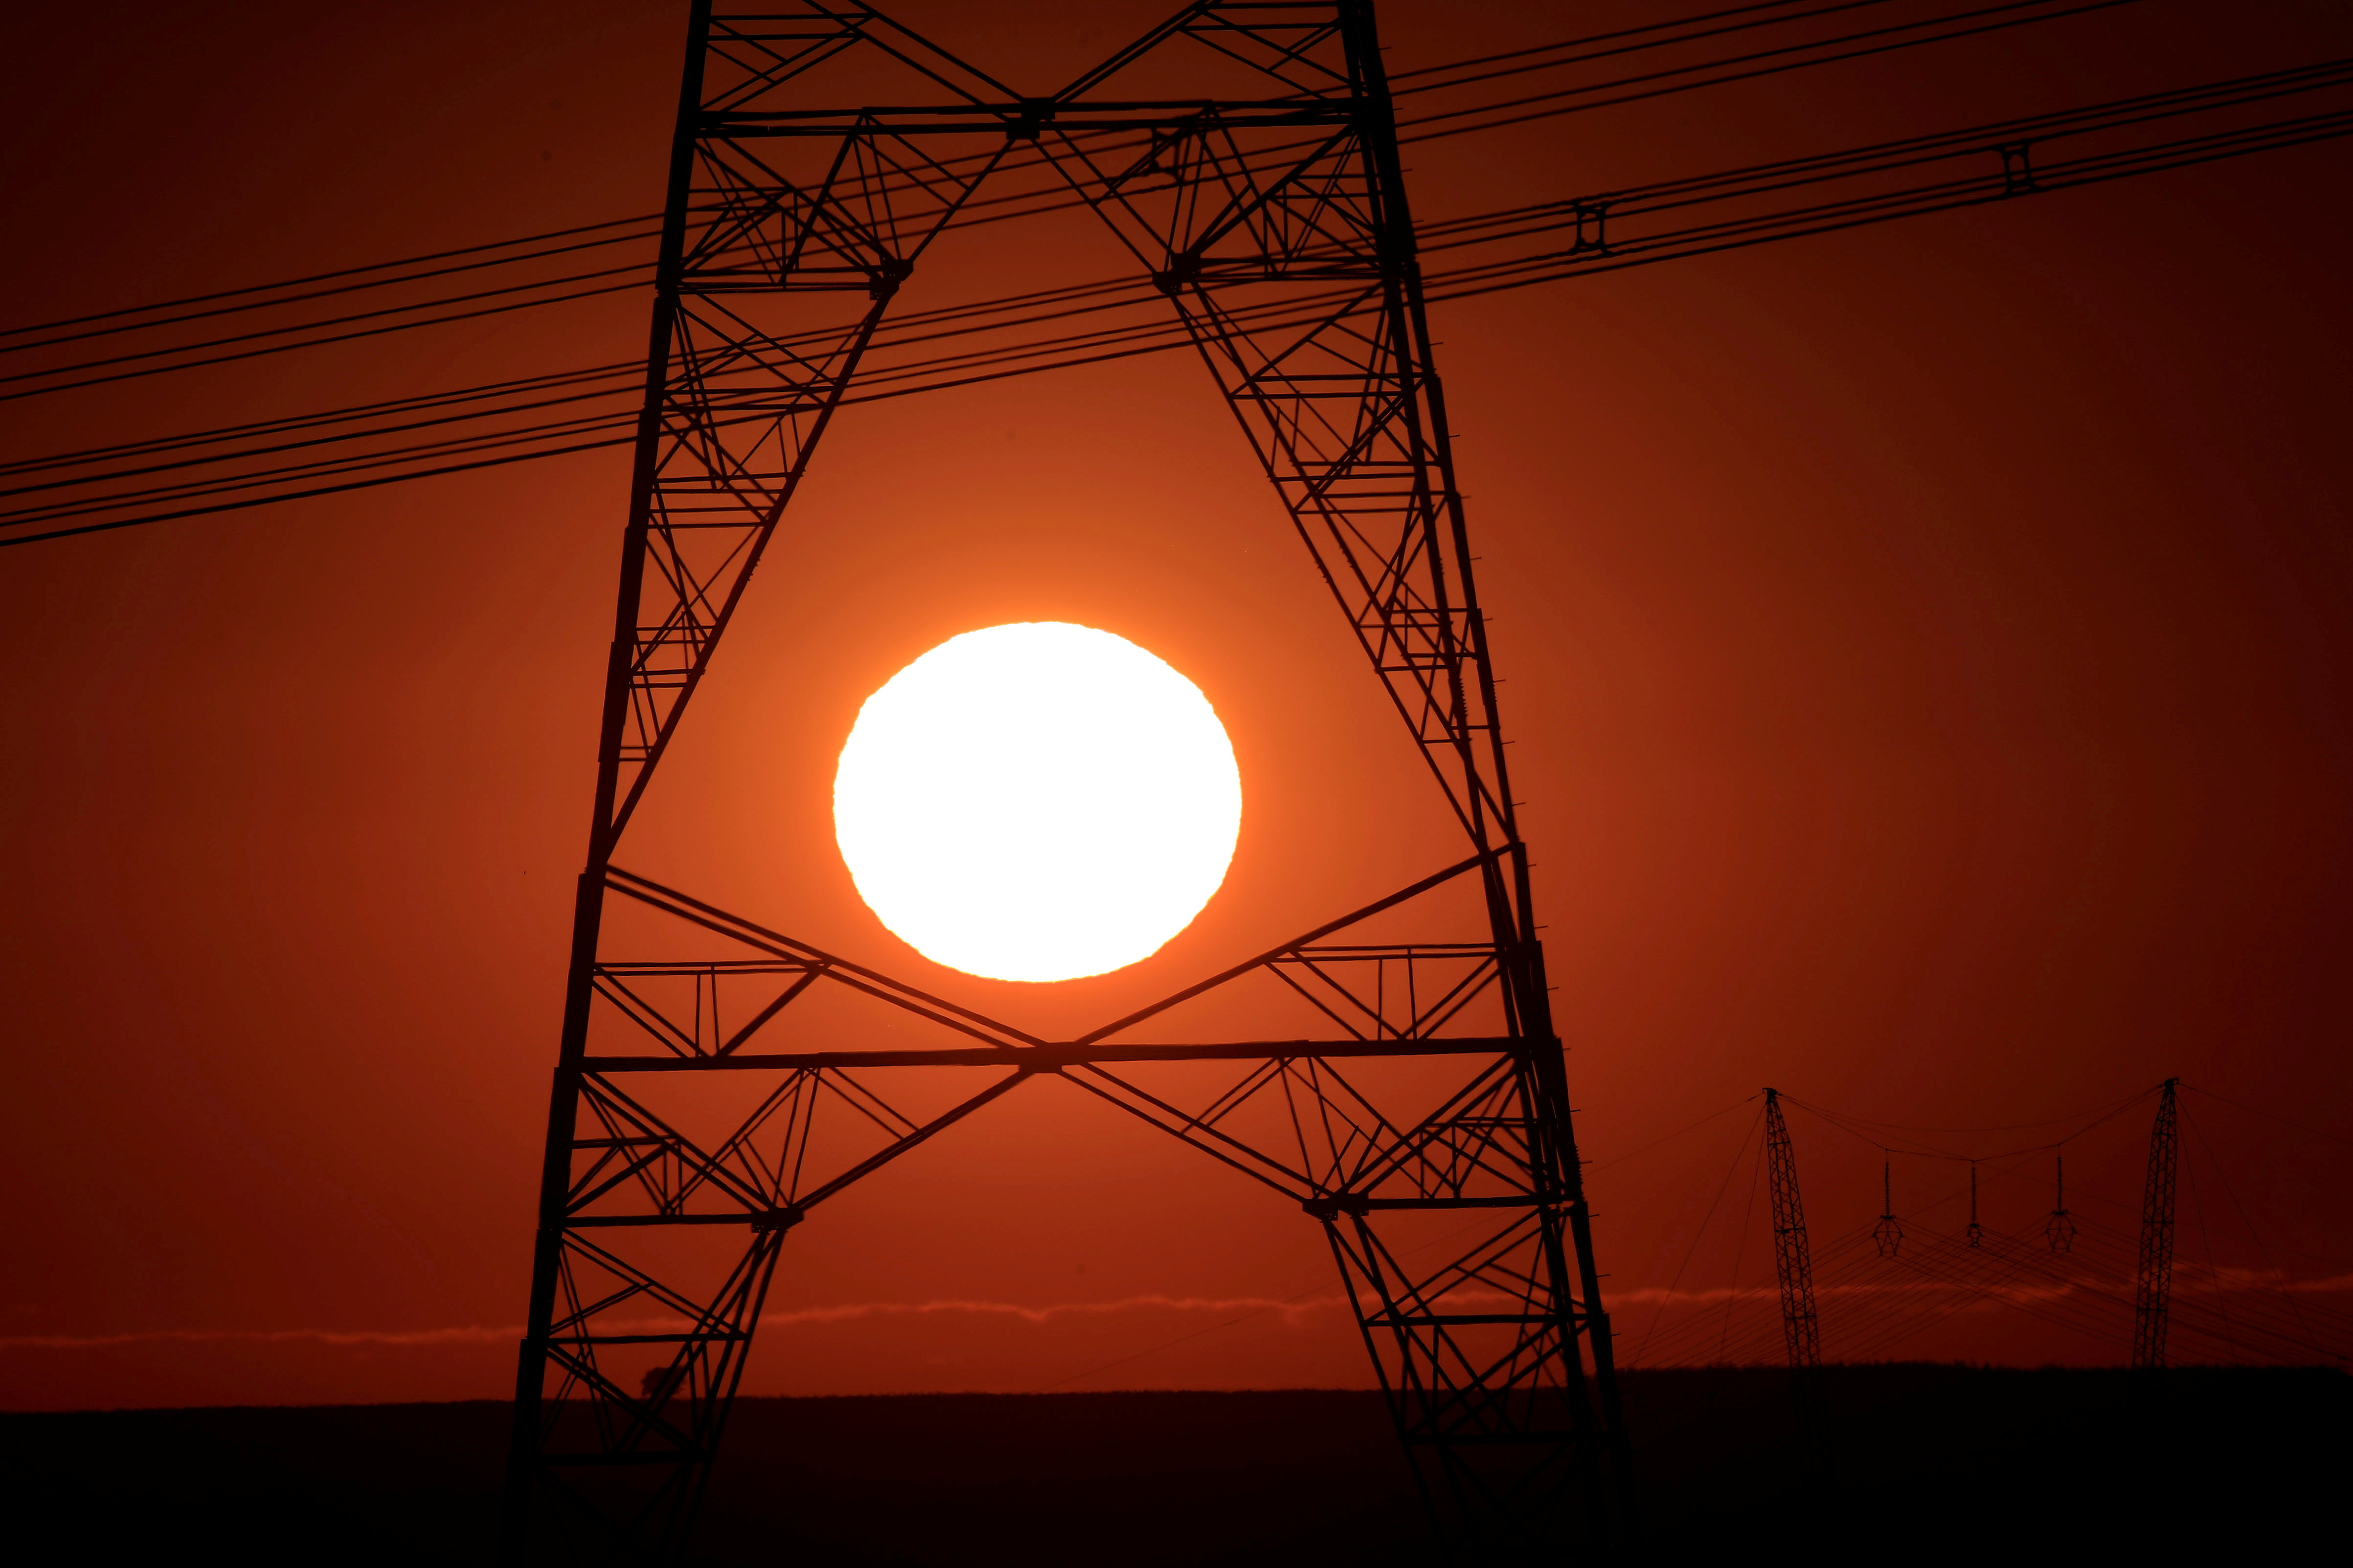 Power lines connecting pylons of high-tension electricity are seen during sunrise near Brasilia, Brazil August 29, 2018. Picture taken August 29, 2018. REUTERS/Ueslei Marcelino/File Photo